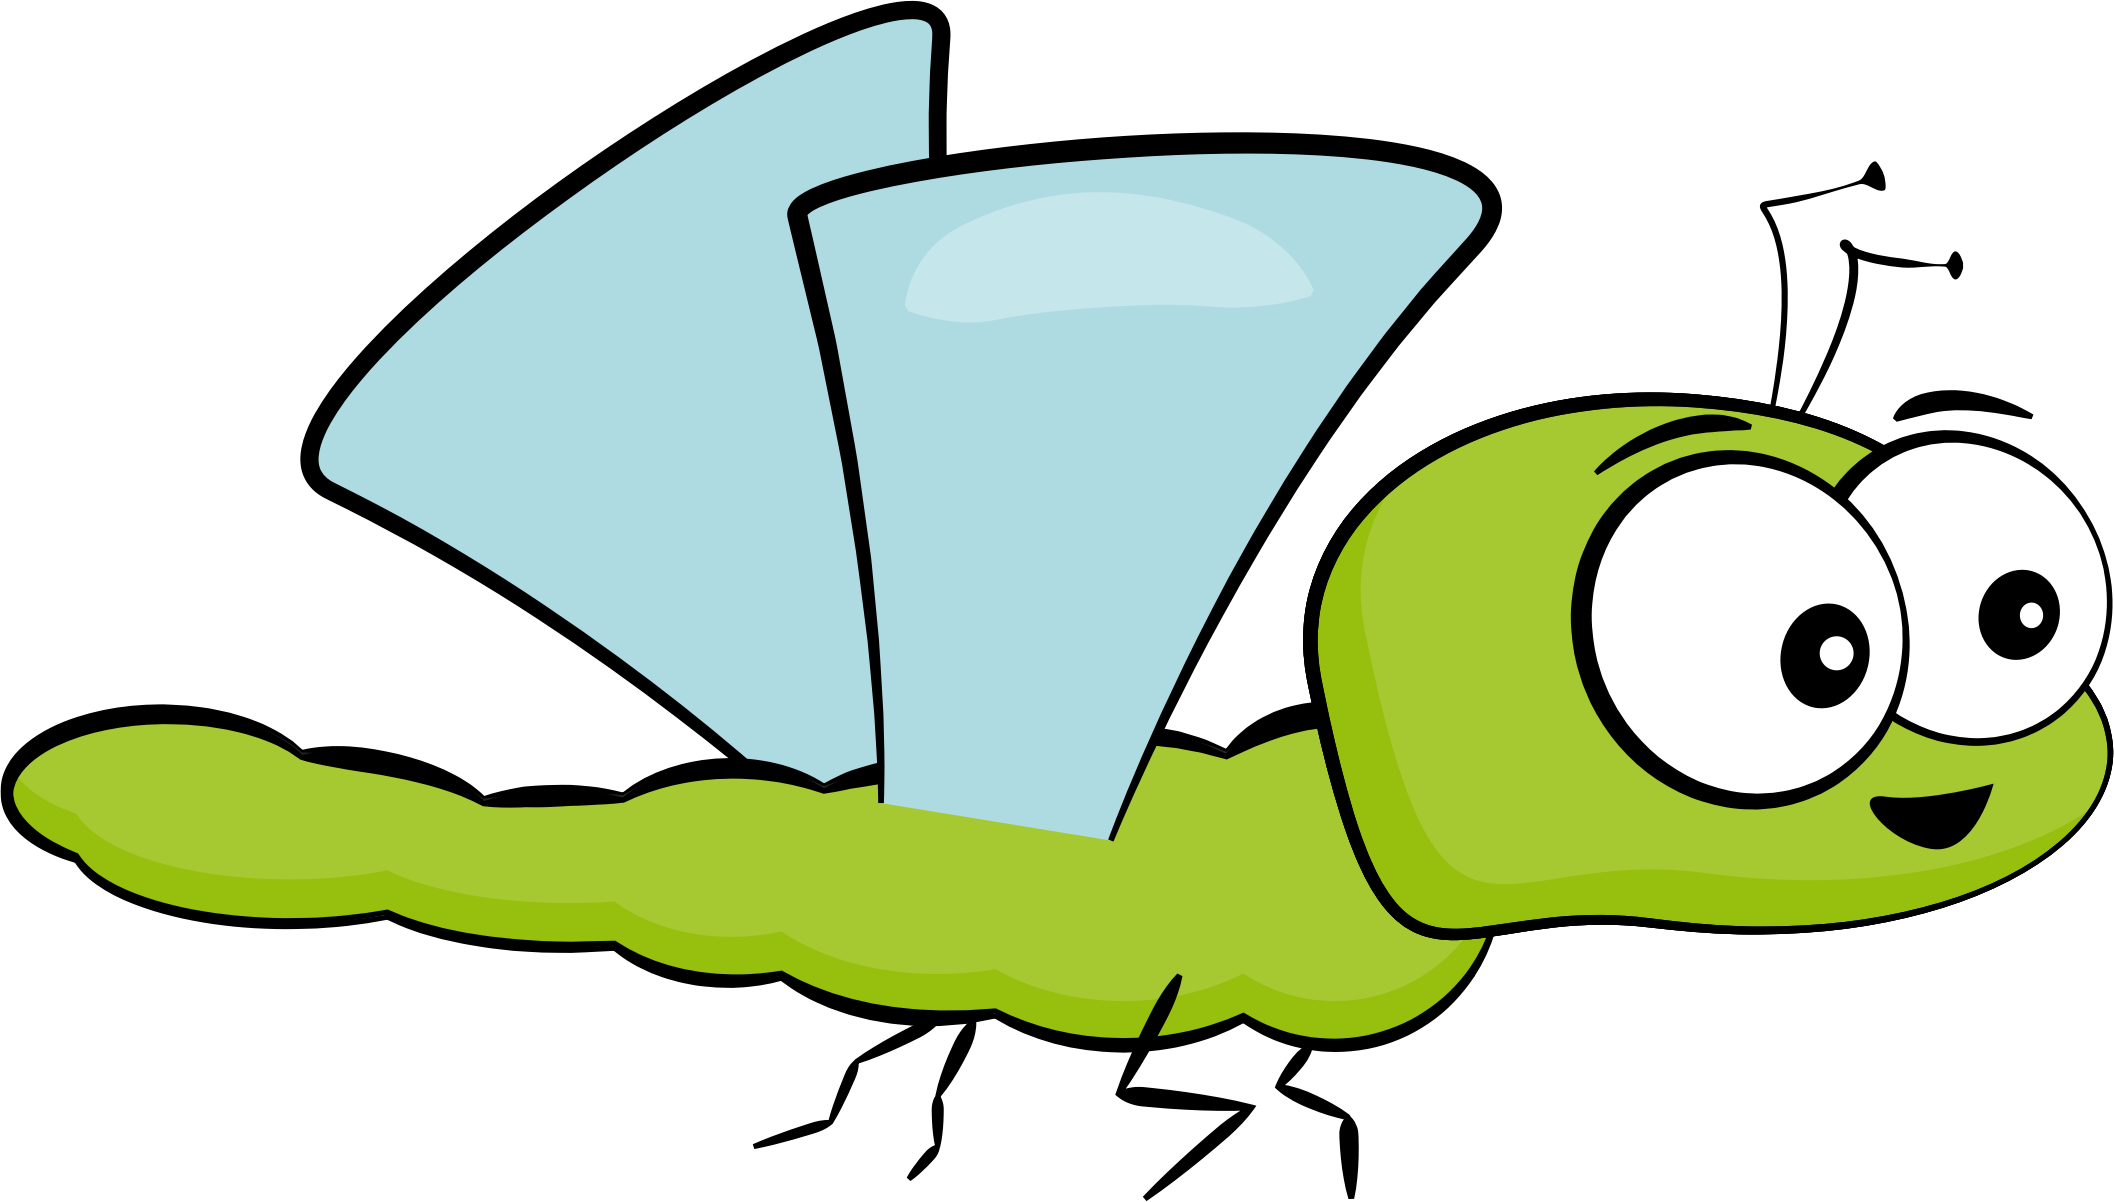 Dragonfly clipart insect. Cartoon big image png